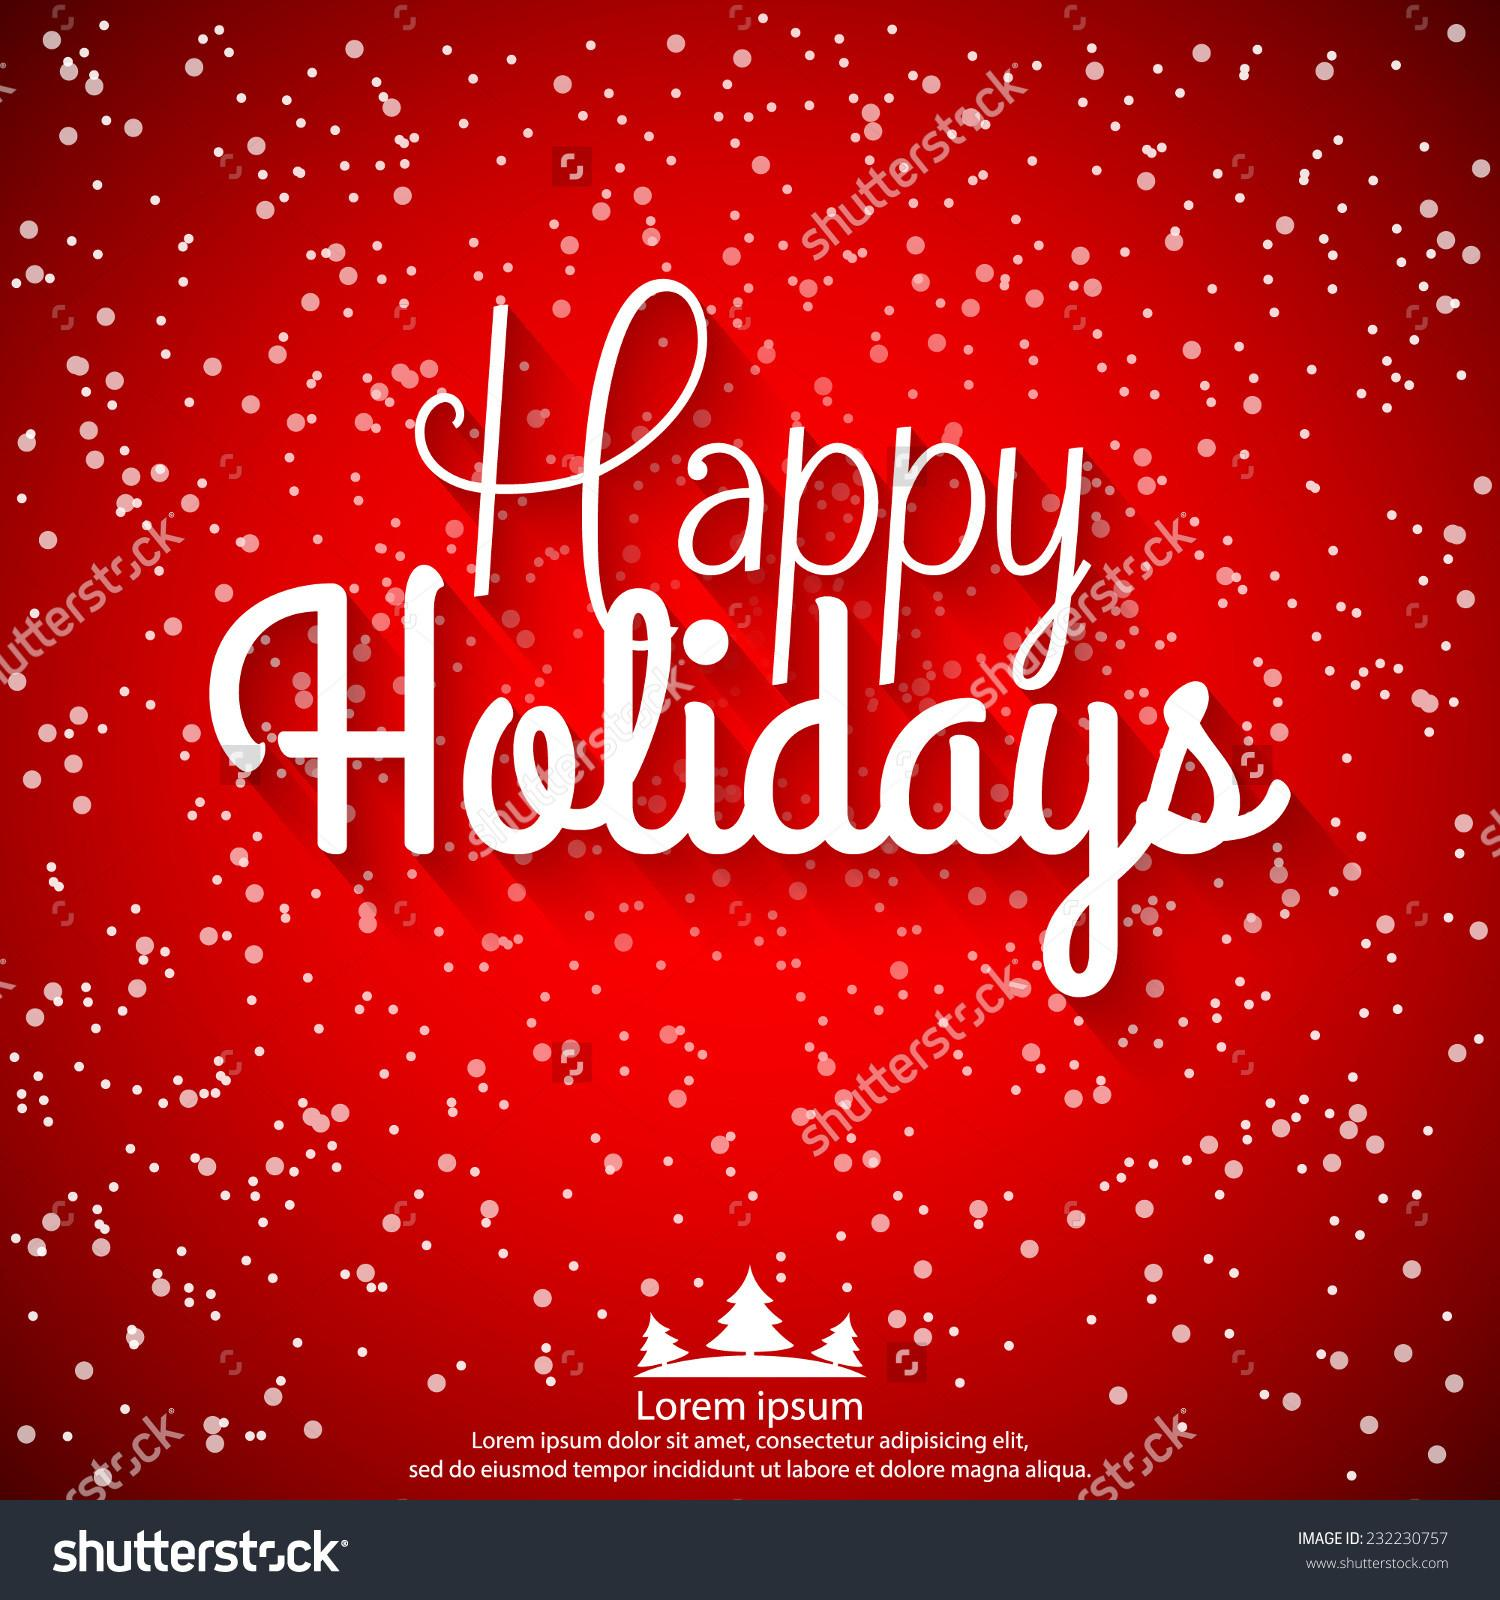 Happy Holidays Banners Clipart